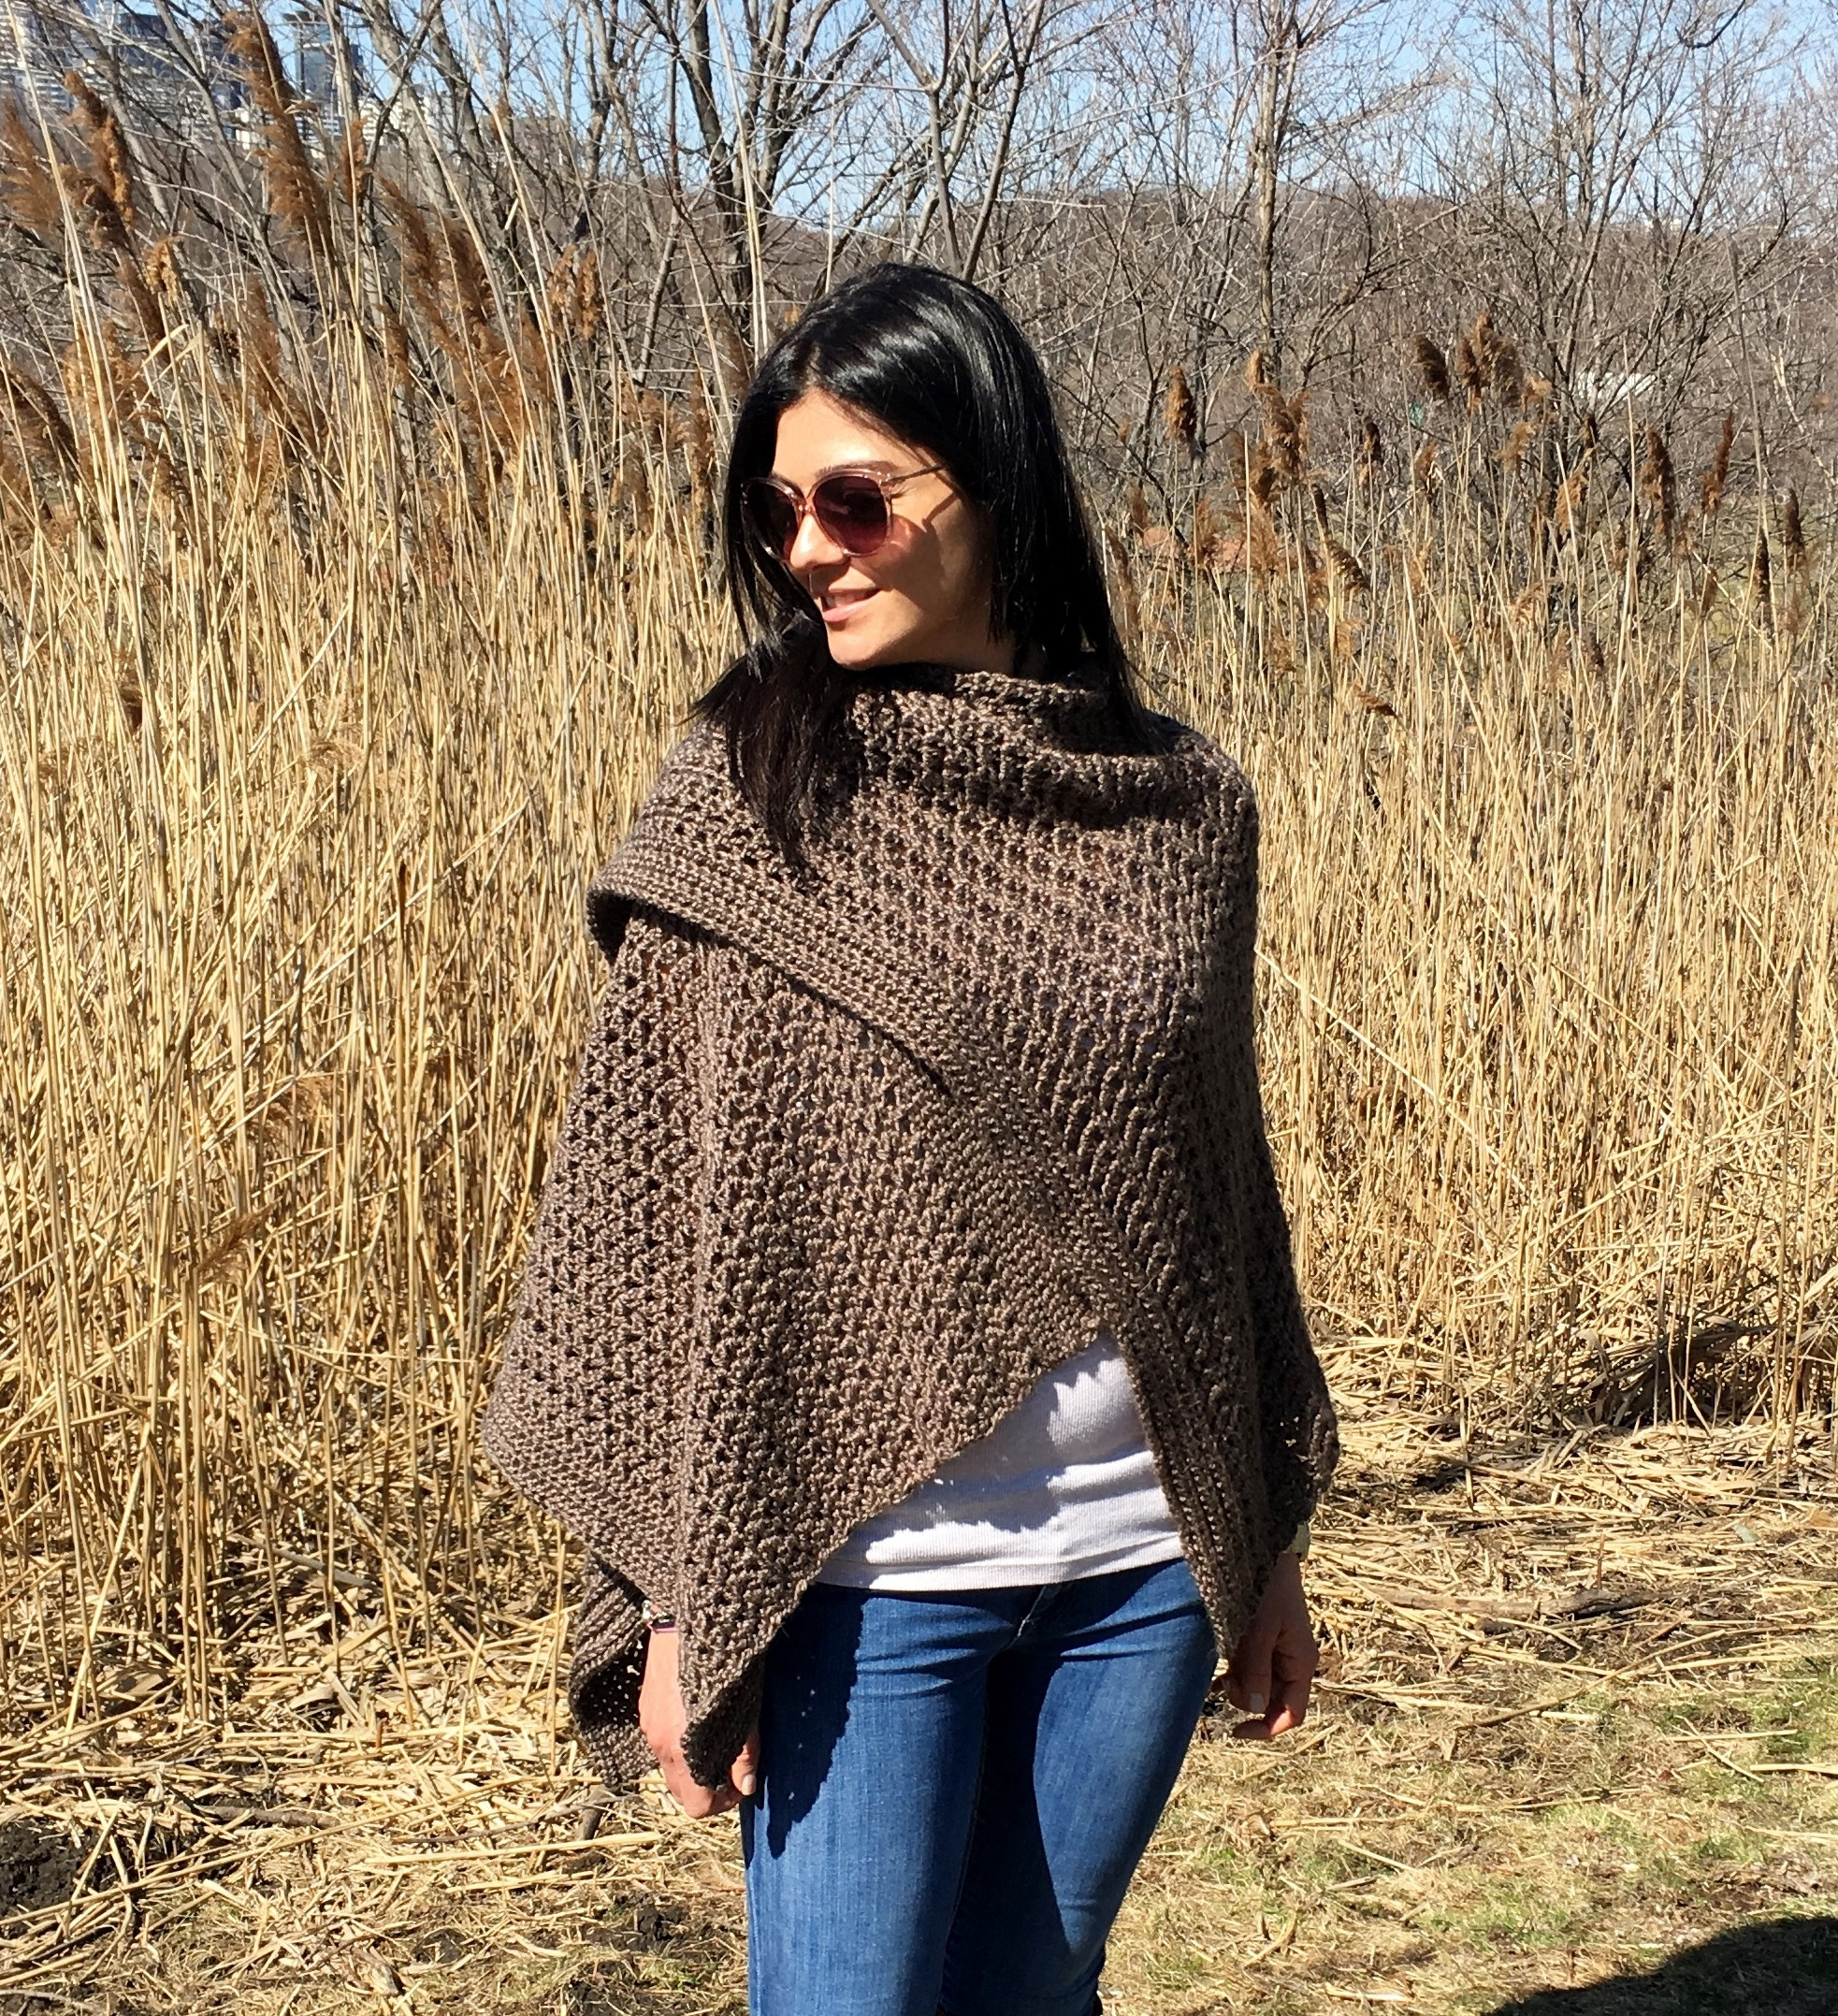 Elegant Ruana Poncho Ponshawl Shawl Pattern Detailed Free Crochet Ruana Pattern Of Amazing 46 Ideas Free Crochet Ruana Pattern